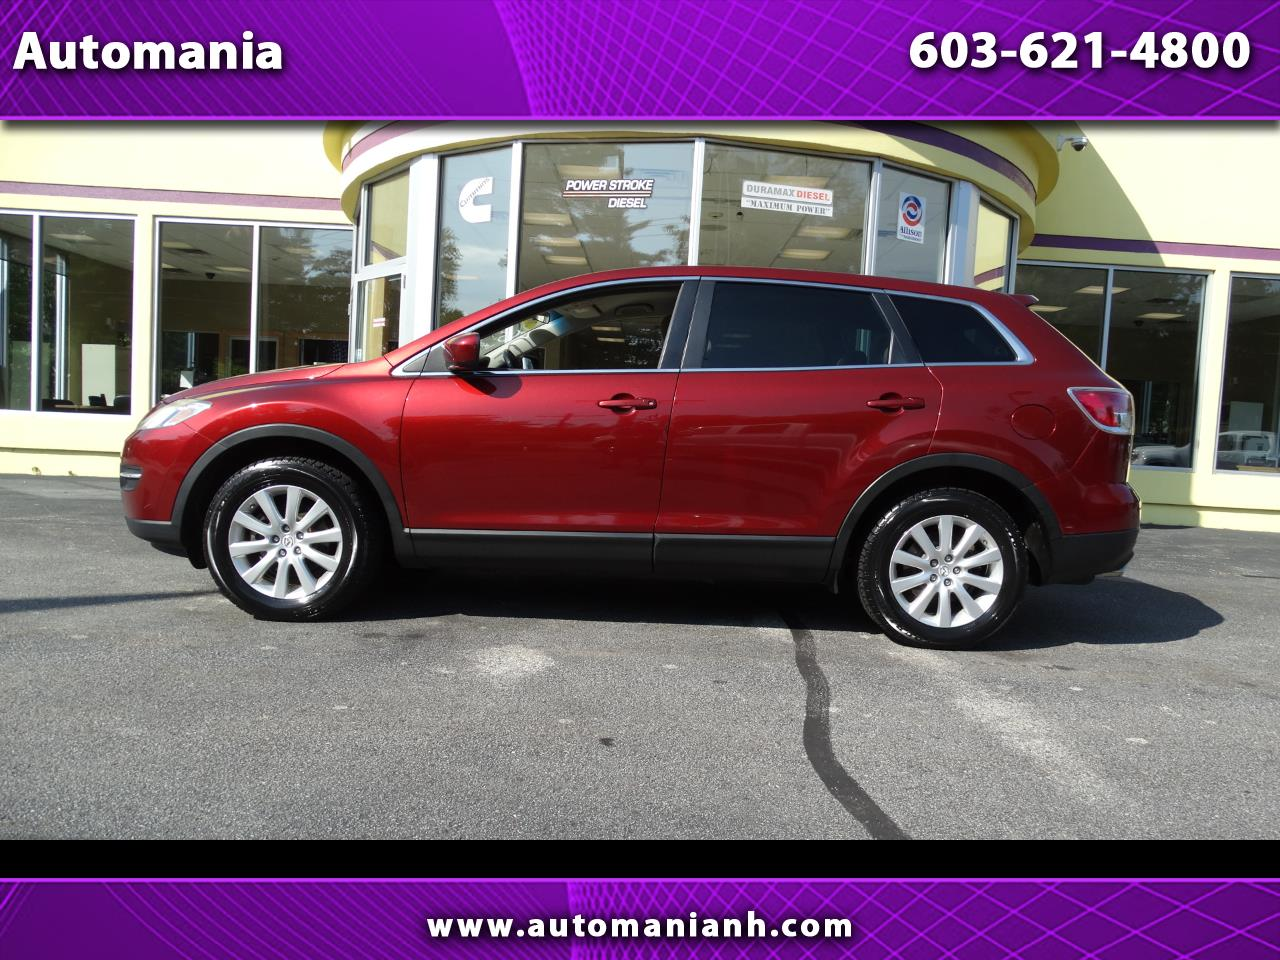 2008 Mazda CX-9 GRAND TOURING 4WD 3RD ROW SEAT